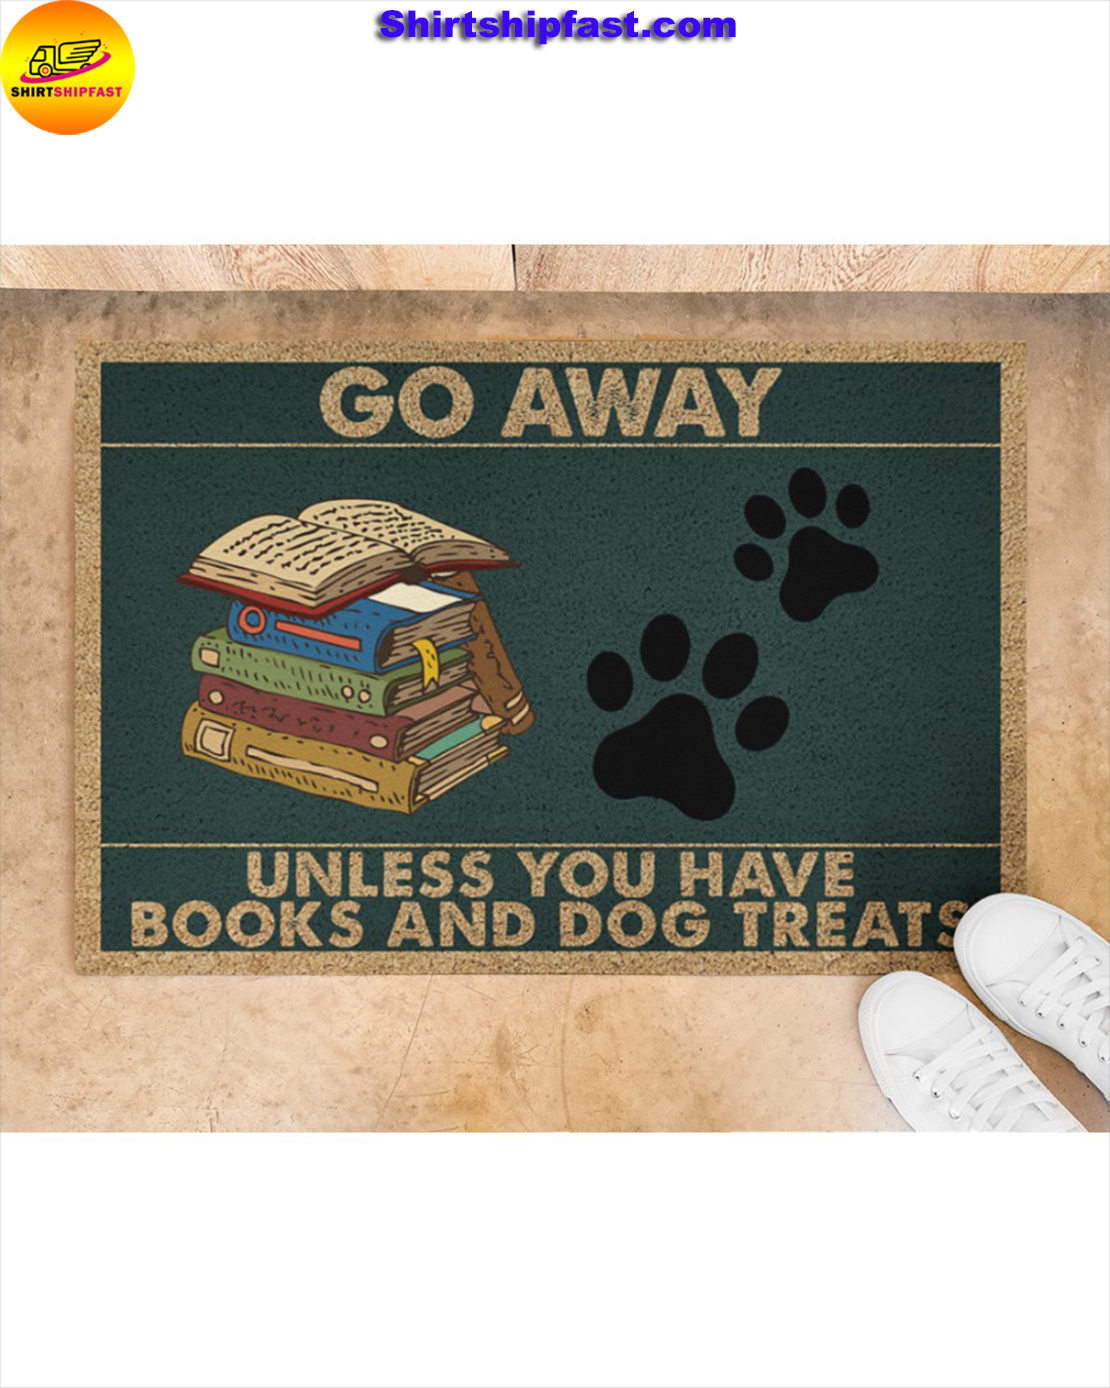 Go away unless you have books and dogs treats doormat - Picture 2